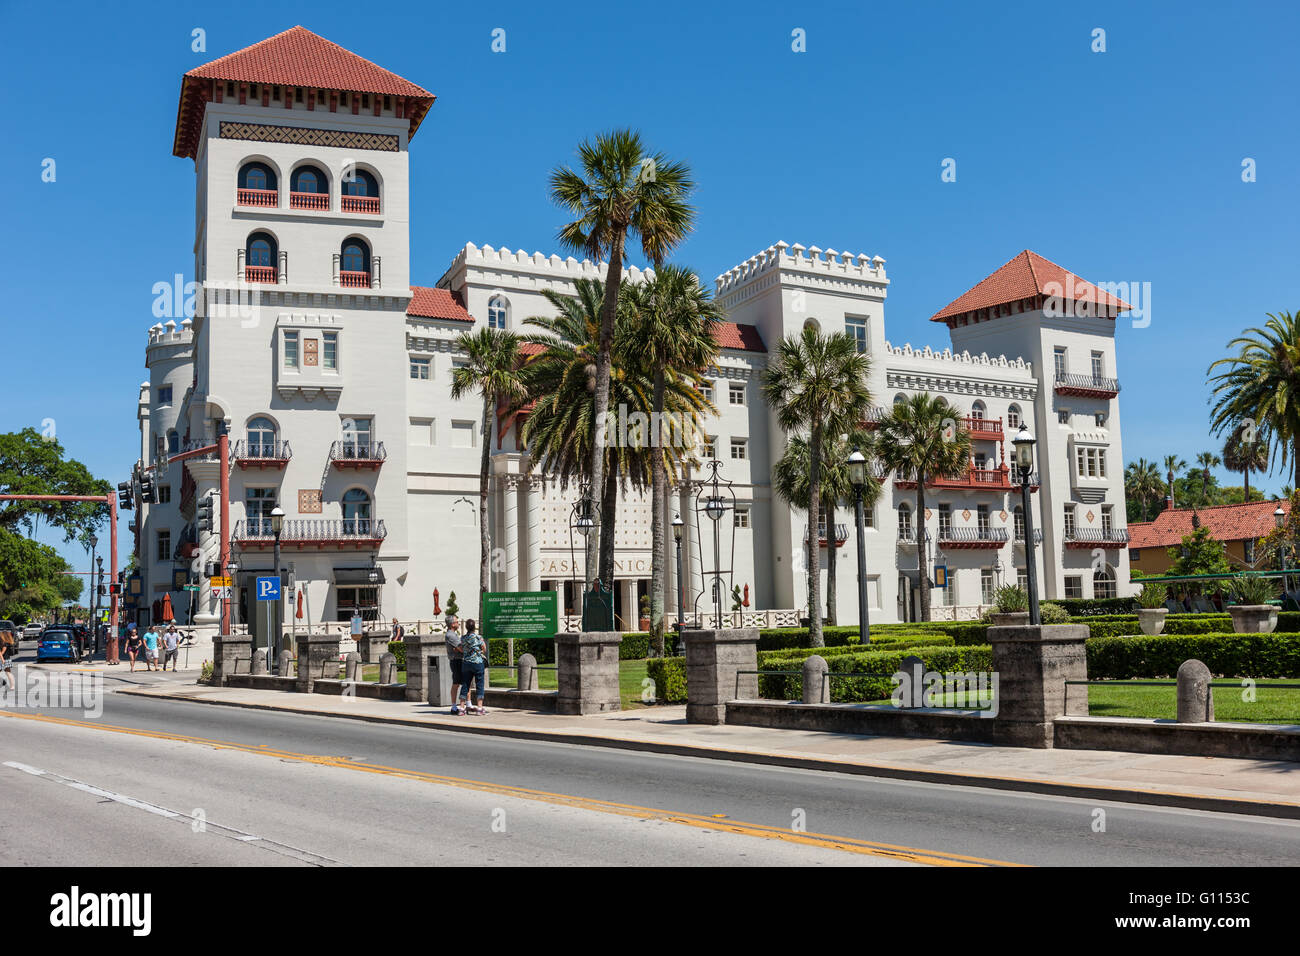 The historic Casa Monica Hotel in St. Augustine, Florida. - Stock Image